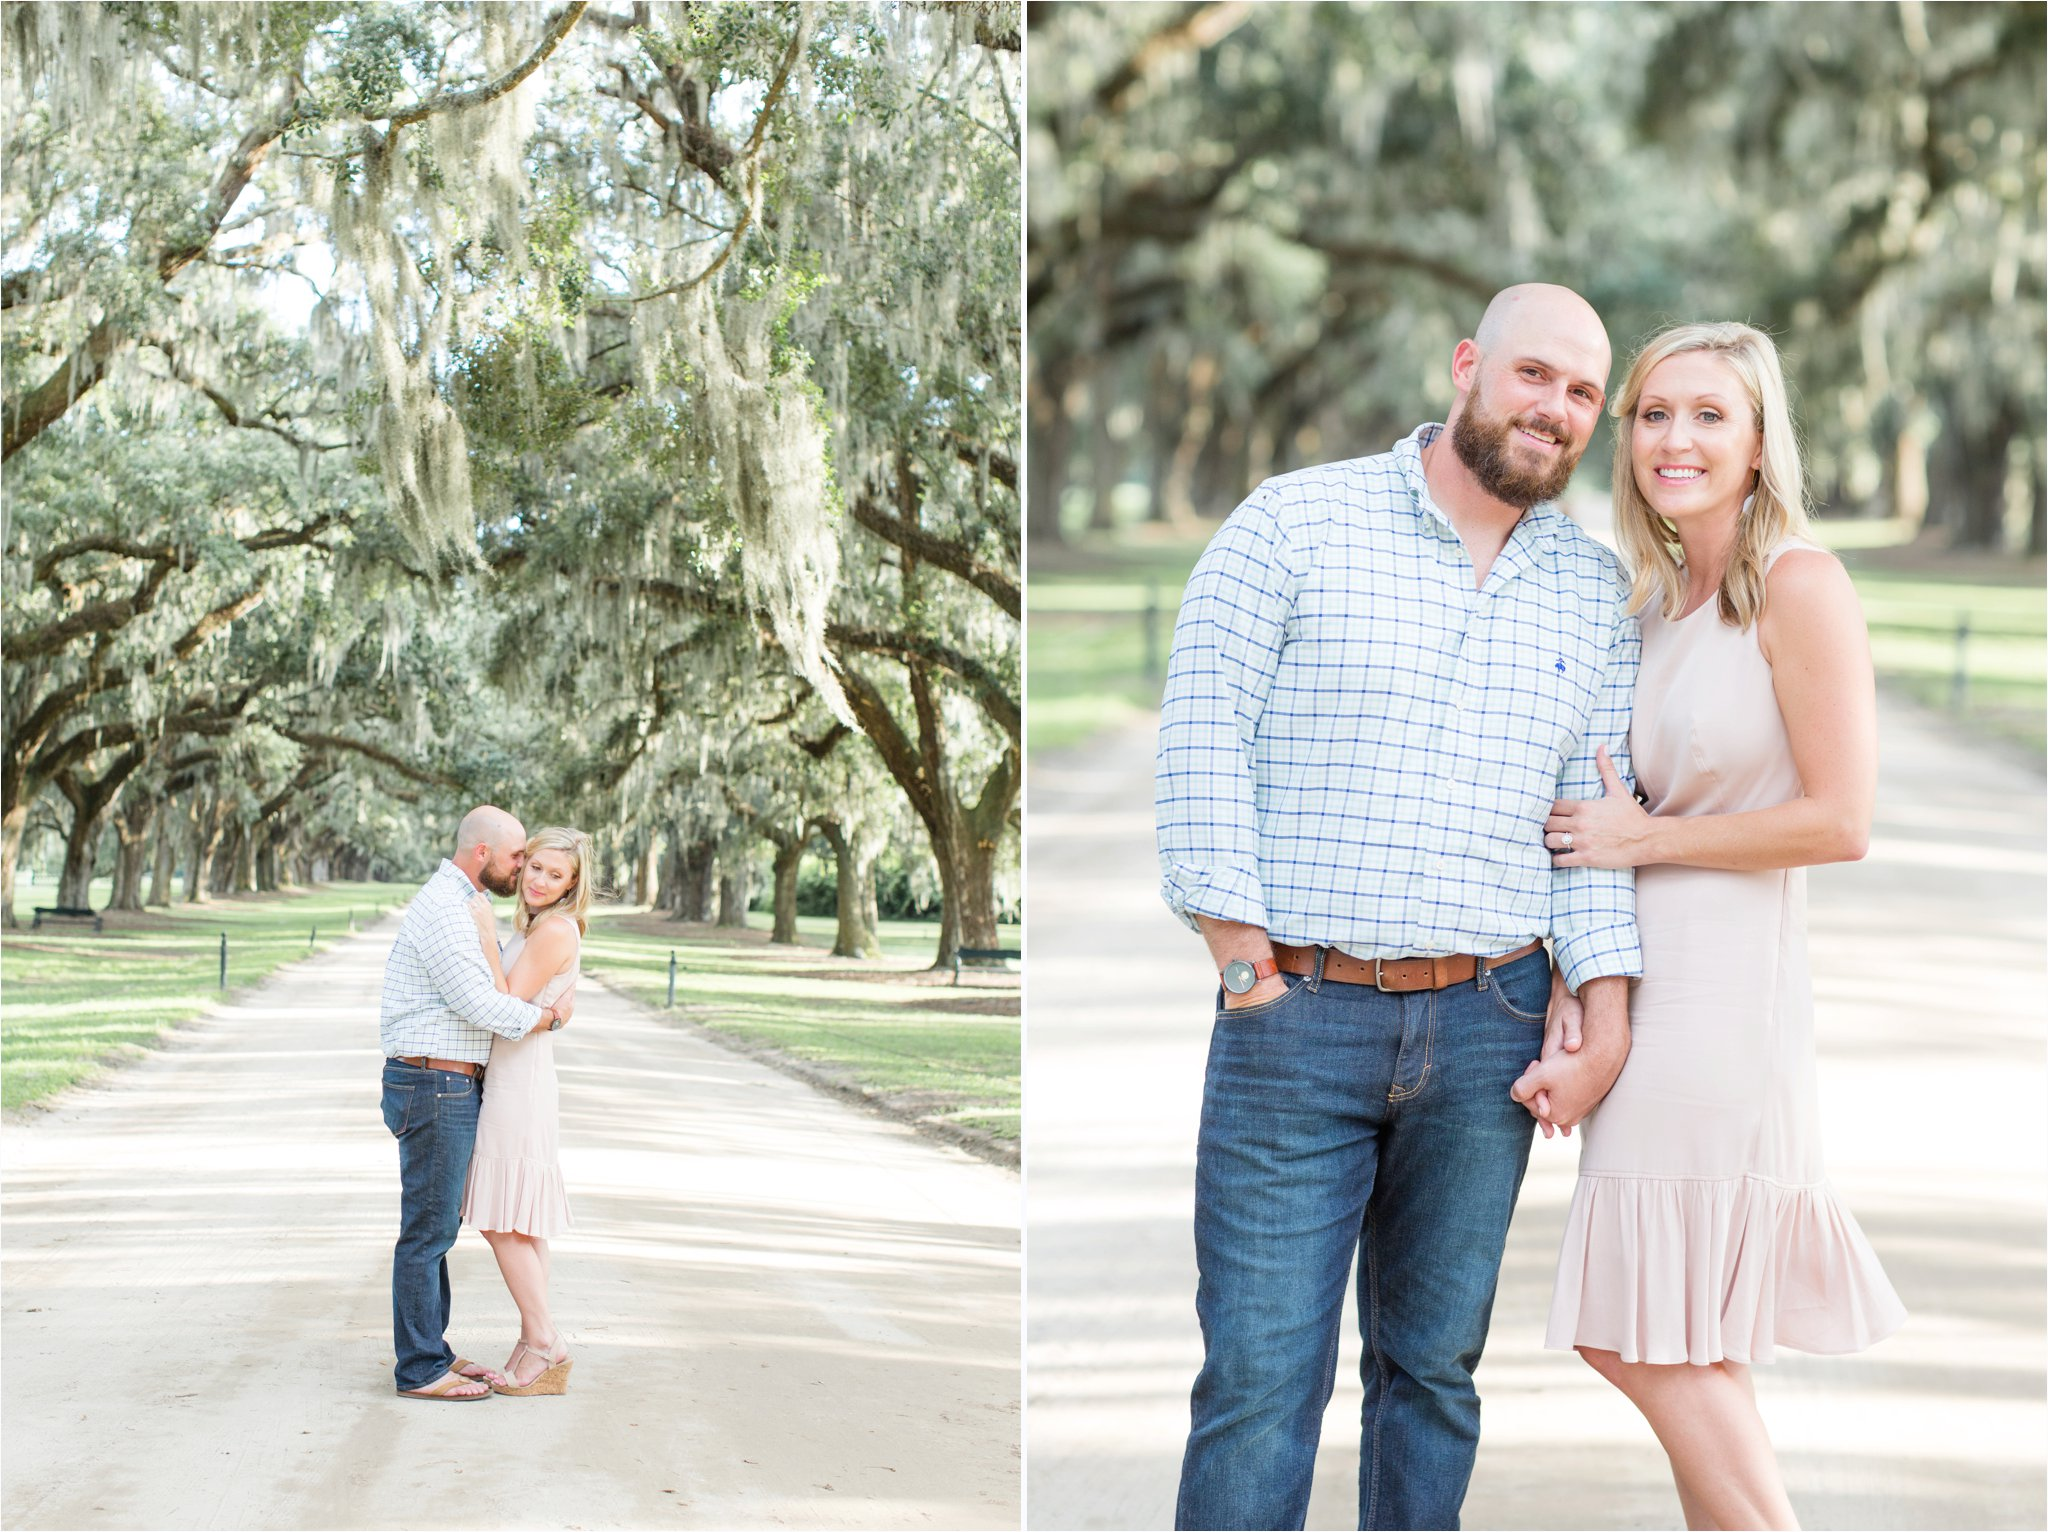 Boone Hall Engagement Session | Boone Hall Wedding Photographer | Charleston Wedding Photographer | Christa Rene Photography